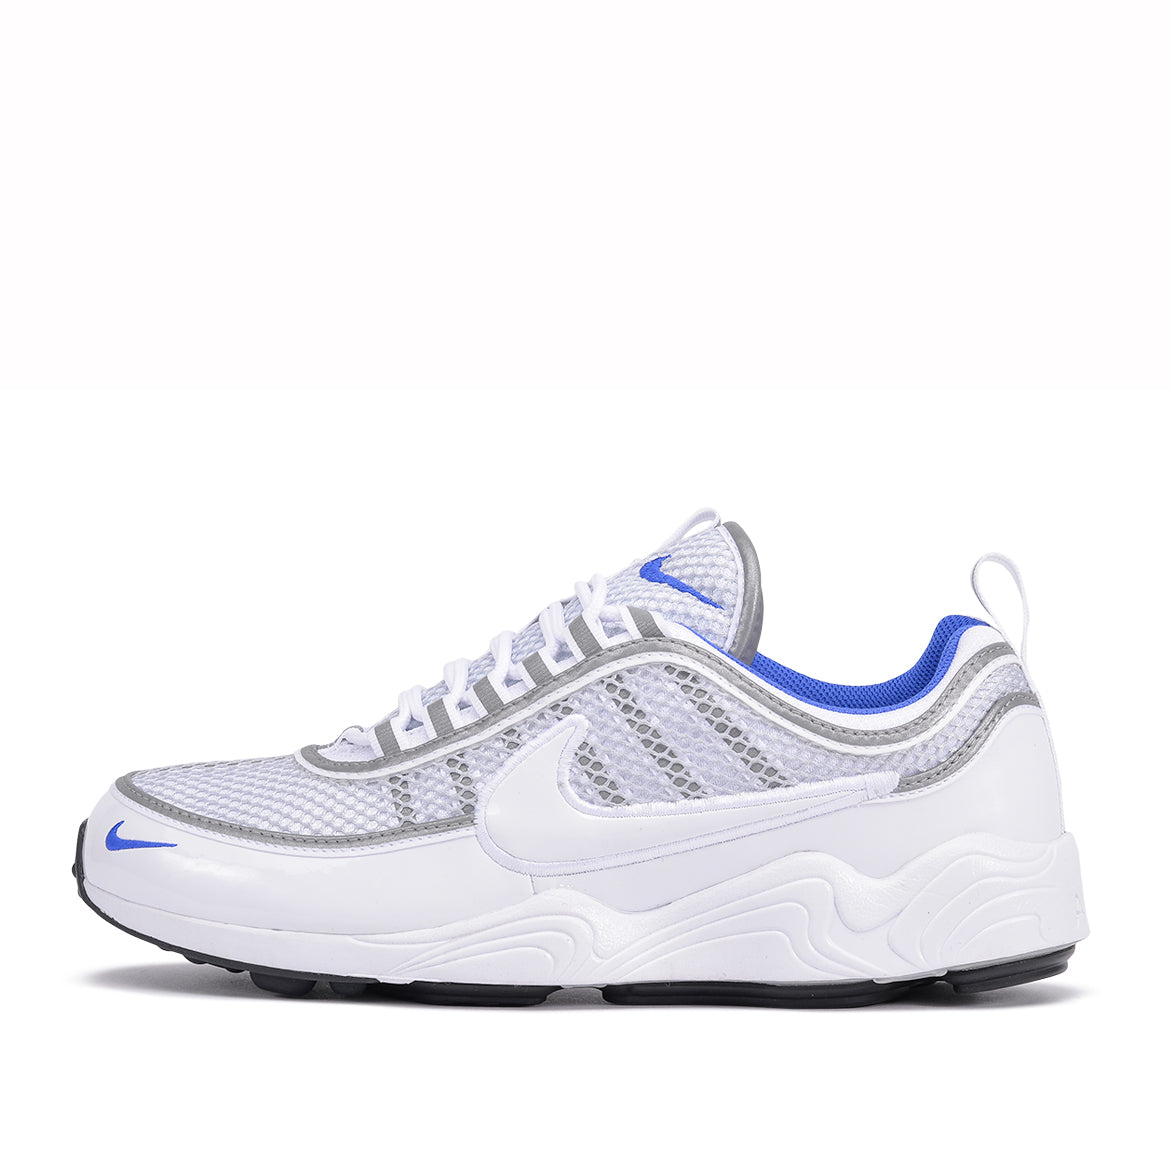 a74292f34a172 AIR ZOOM SPIRIDON `16 - WHITE   PURE PLATINUM